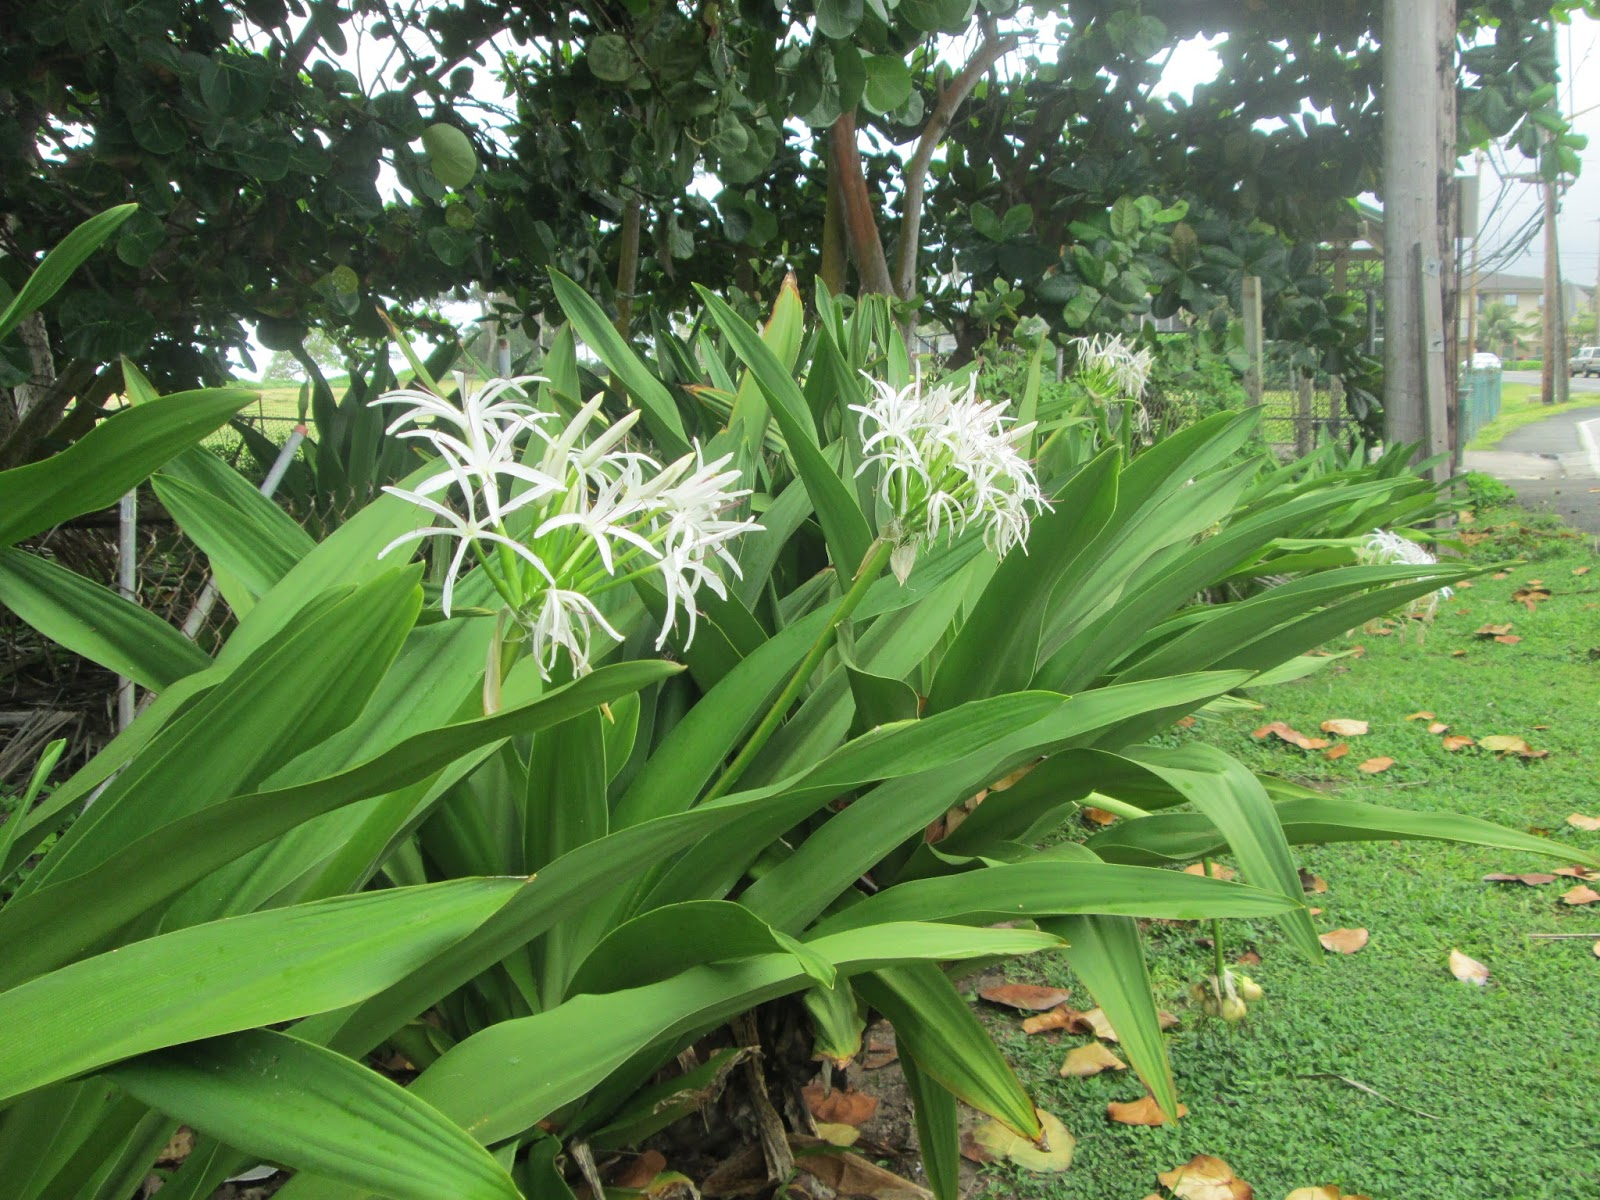 Garden notes from hawaii hawaii spider lily crinum asiaticum you will notice that i have given two scientific names for the spider lily crinum asiaticum and crinum augustim note that what we call spider lily in izmirmasajfo